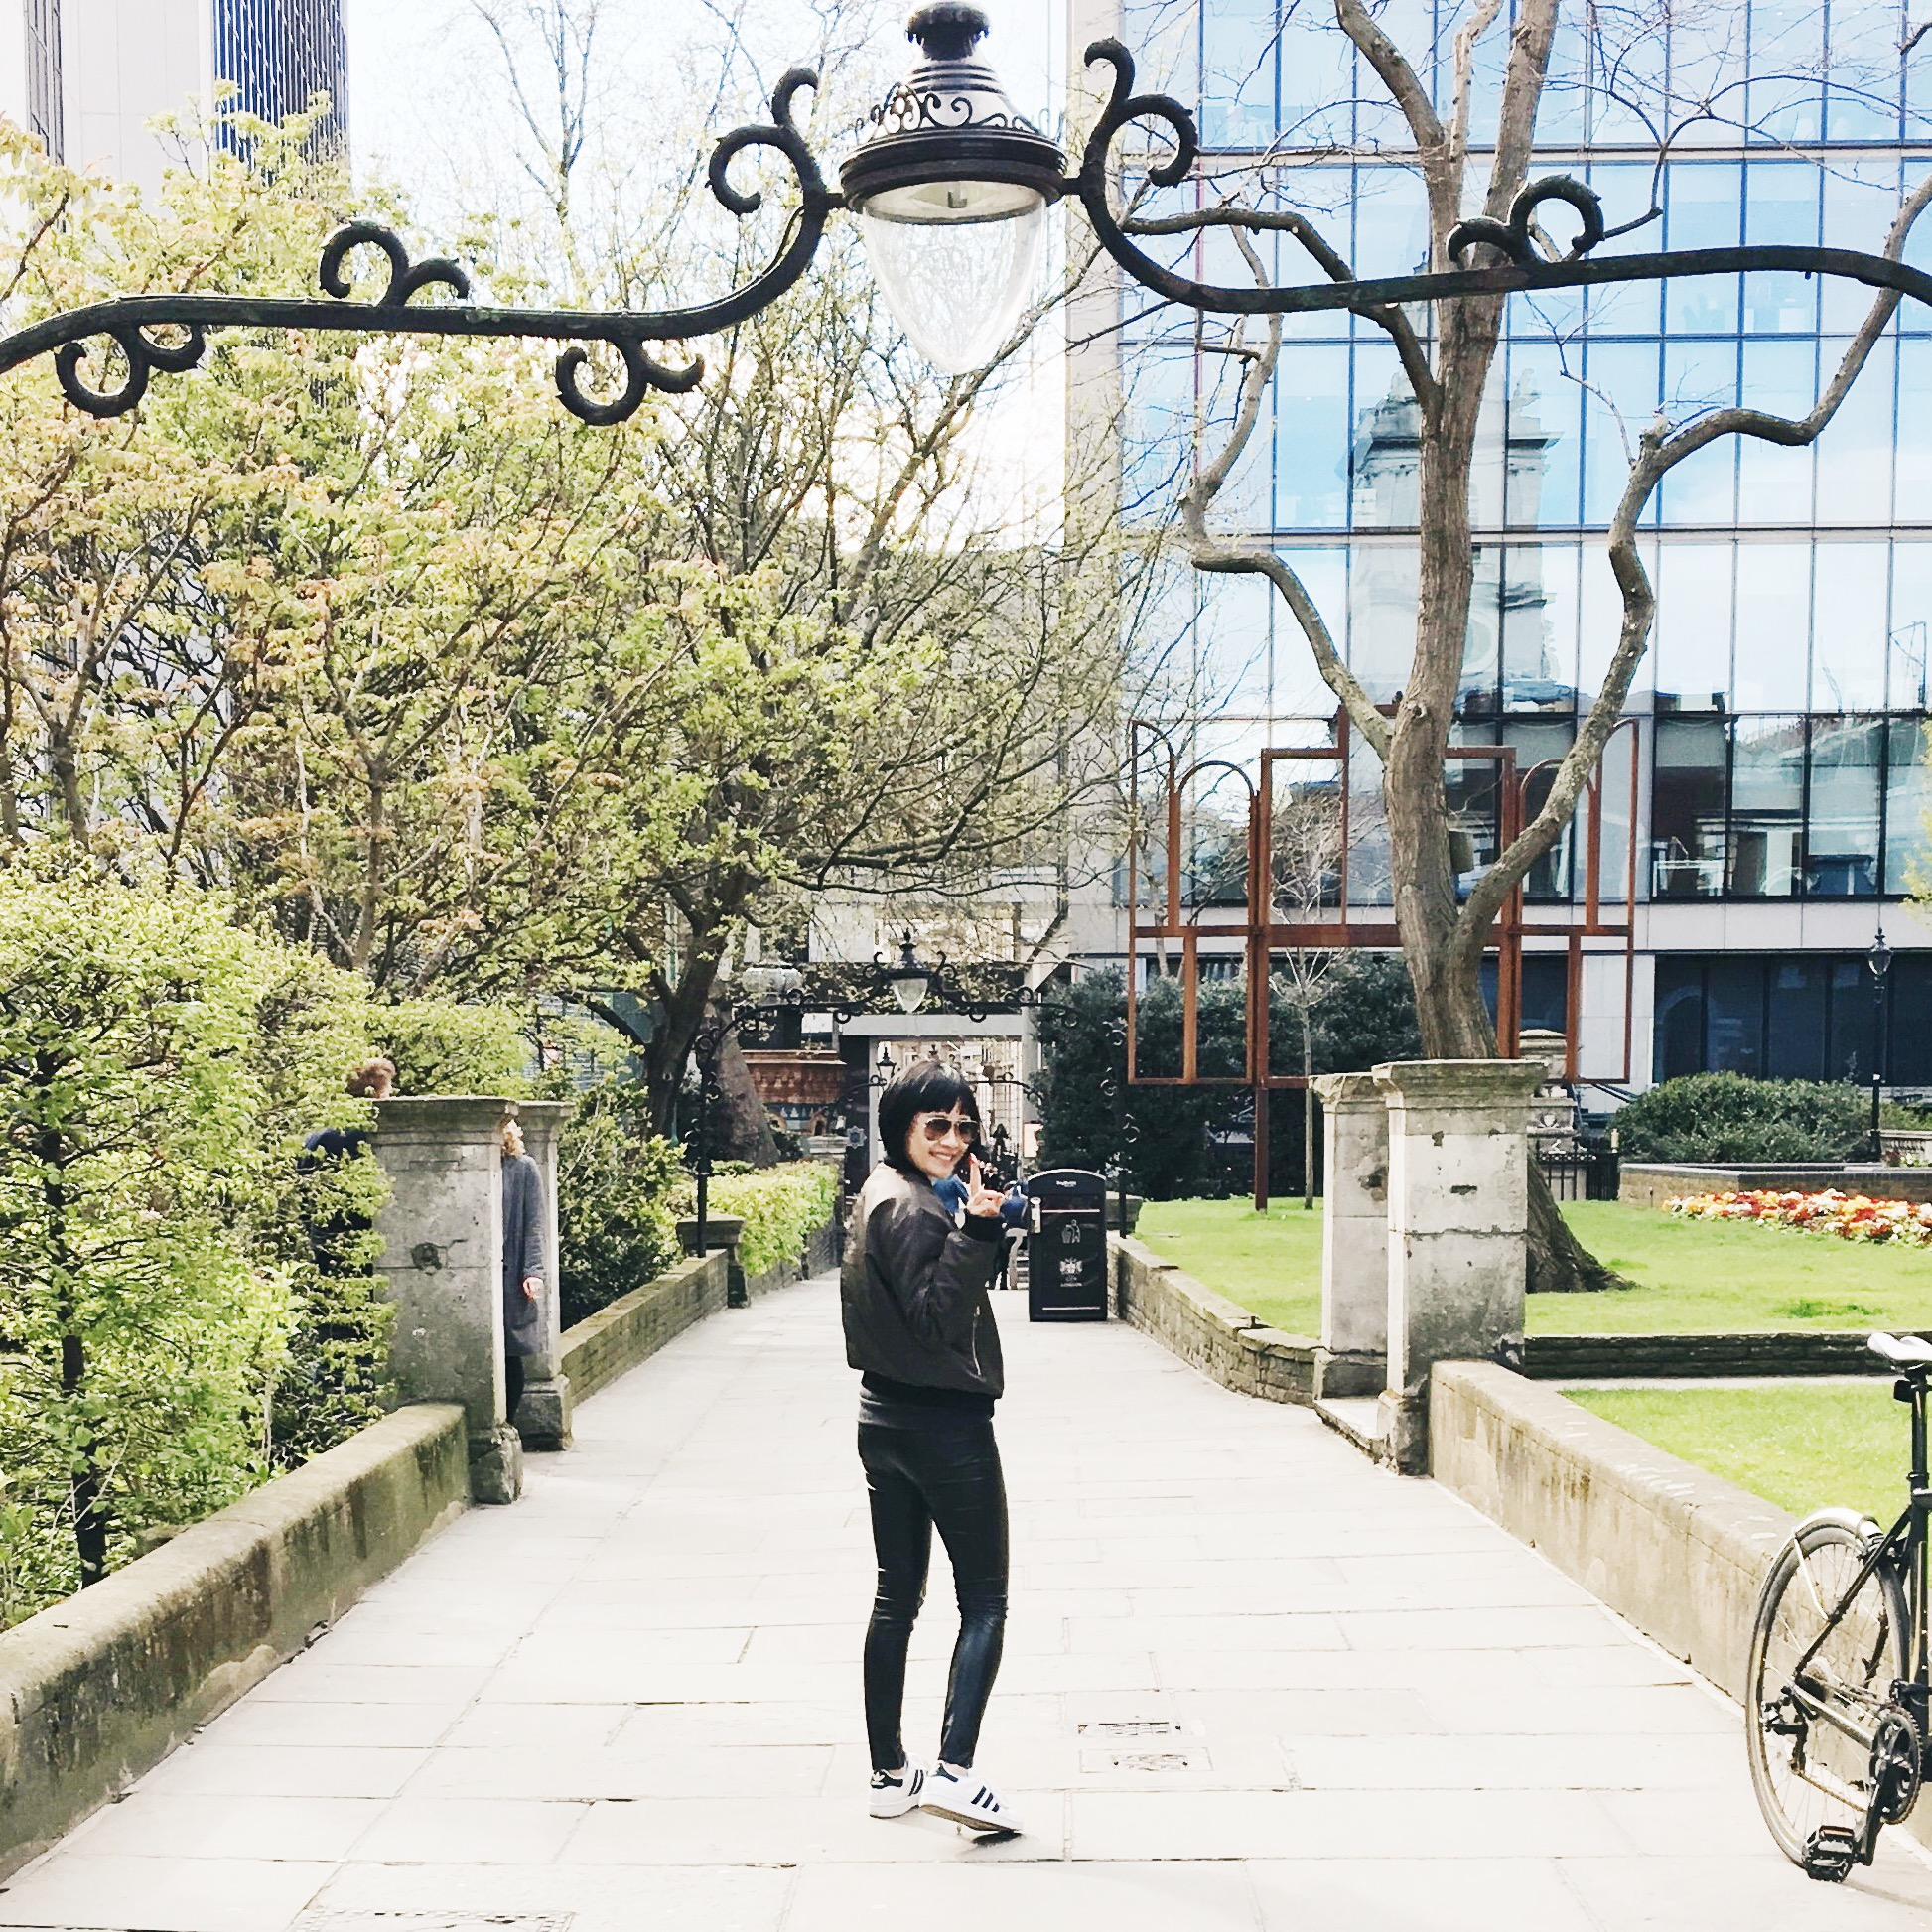 Strolling through the English park before heading home on British Airways on World Traveler Plus class. Champs anyone?